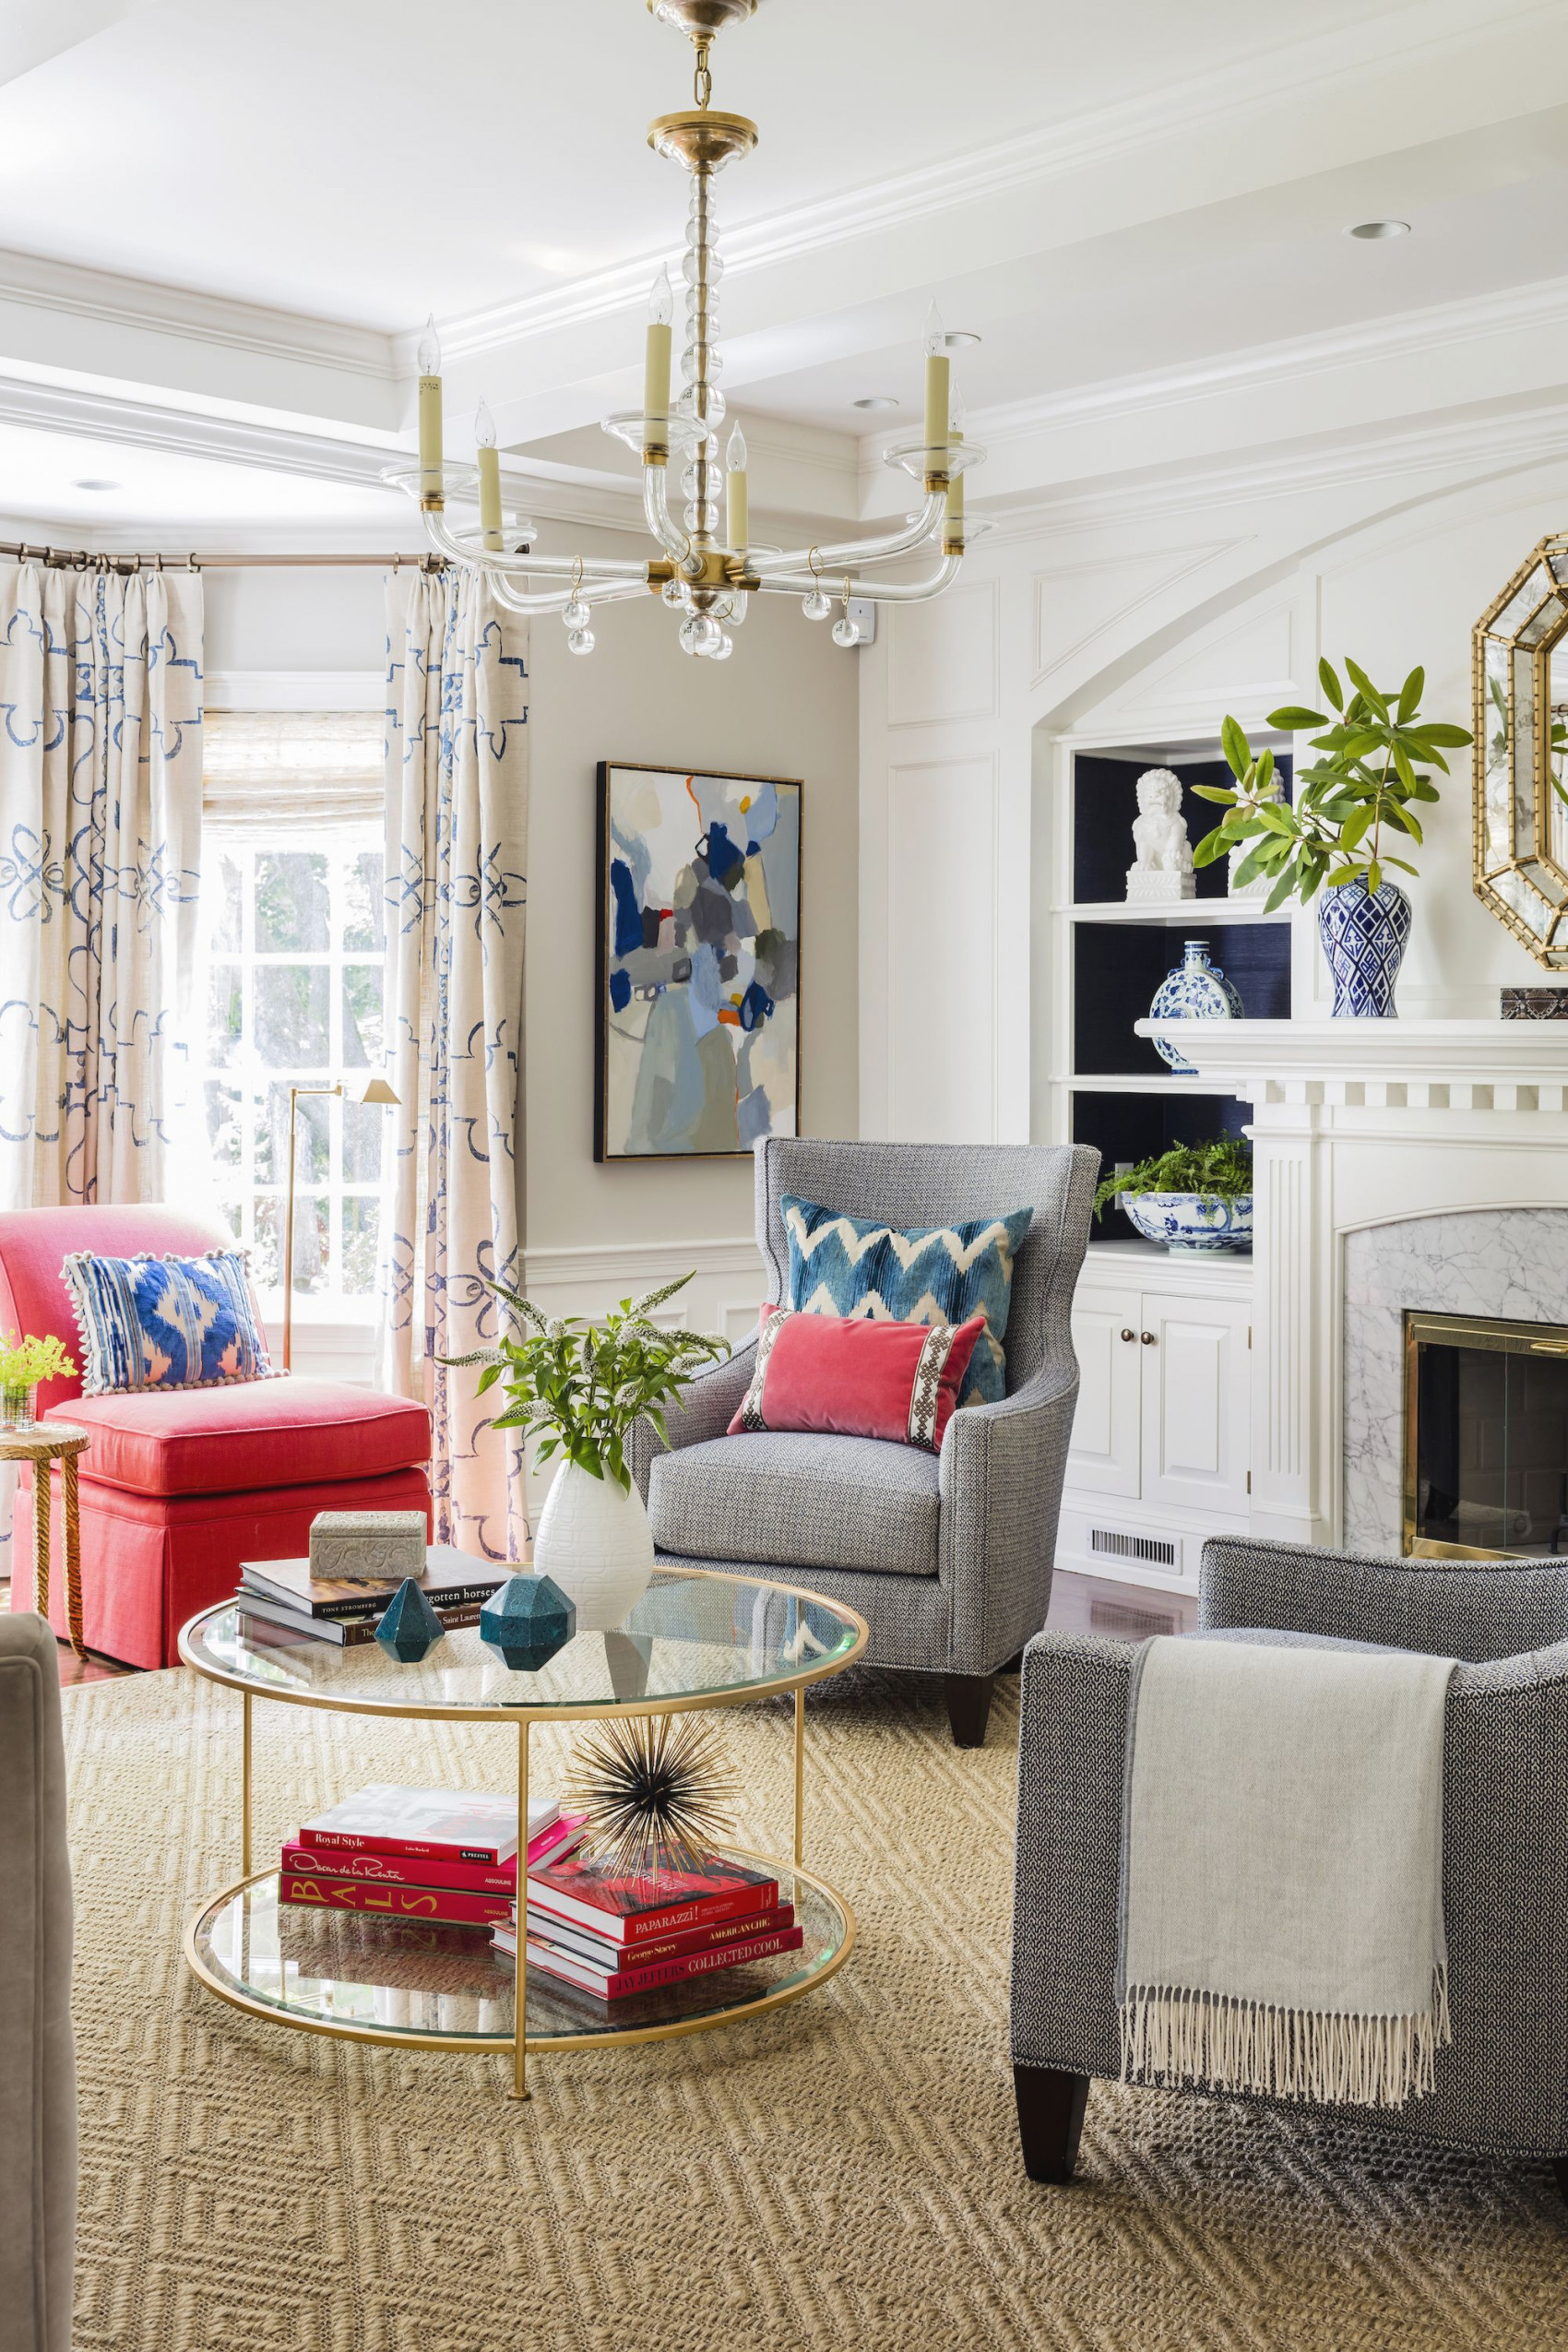 55 Best Living Room Ideas - Stylish Living Room Decorating intended for Ideas Gallery For Living Room Interior Design Ideas